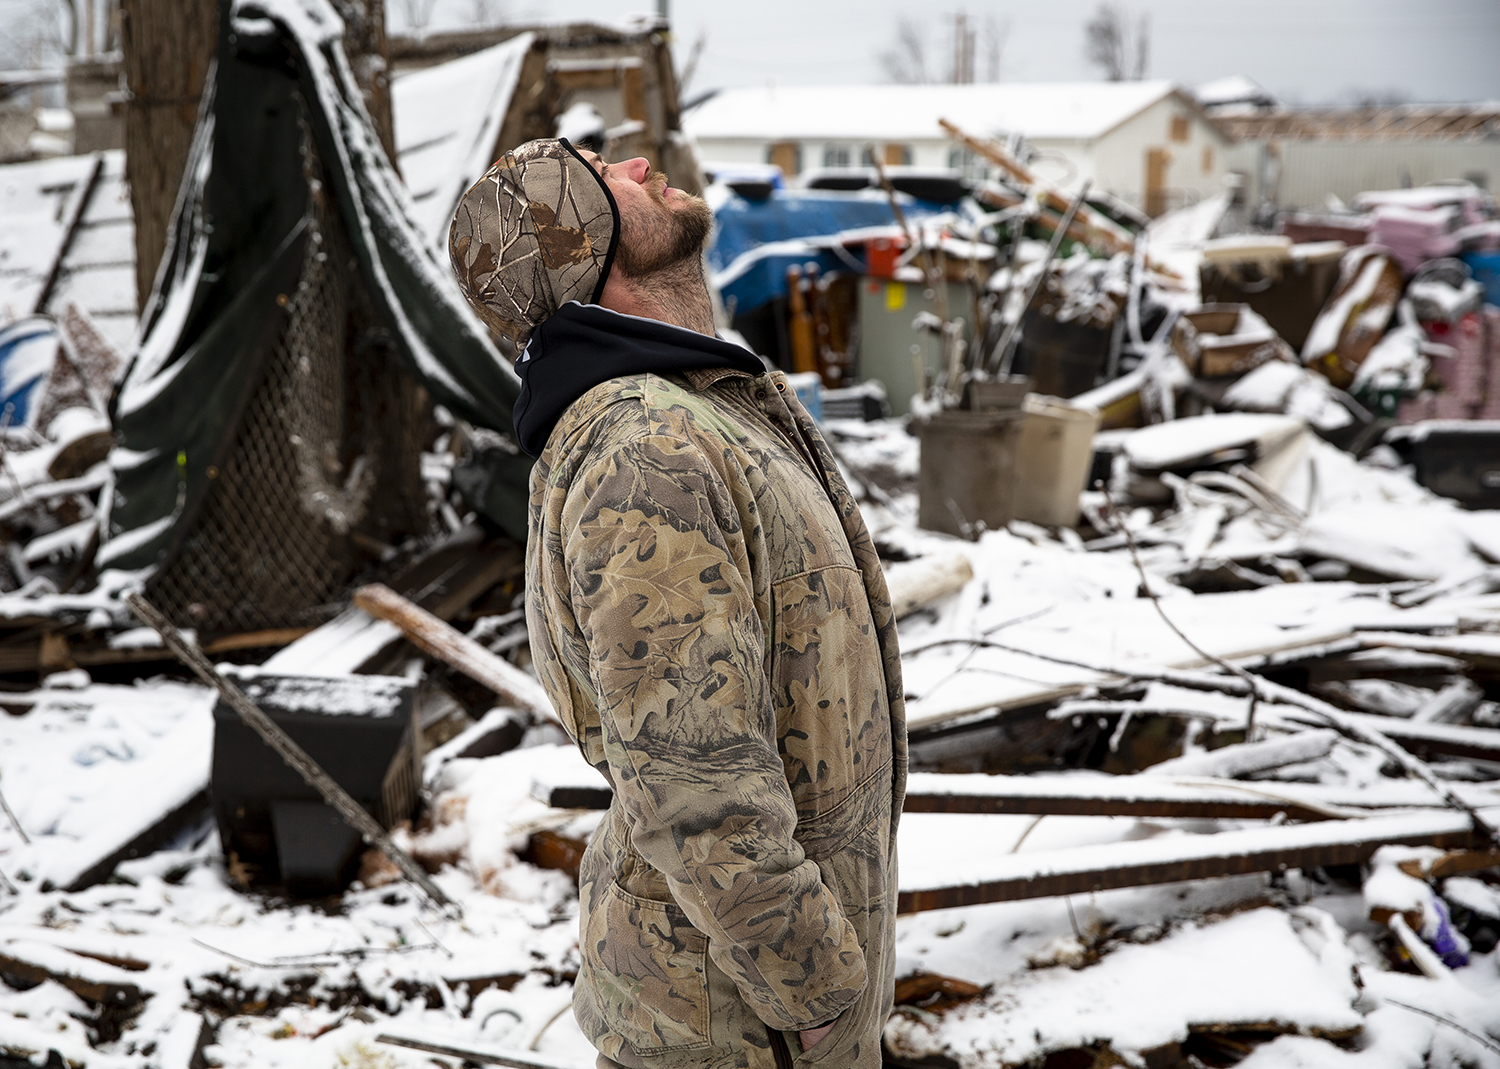 Steven Tirpak reflected on the complete loss of his home on West Coal Street in Taylorville Thursday, Dec. 6, 2018, after a tornado stuck the unincorporated community of Hewittville near Taylorville the previous Saturday. 